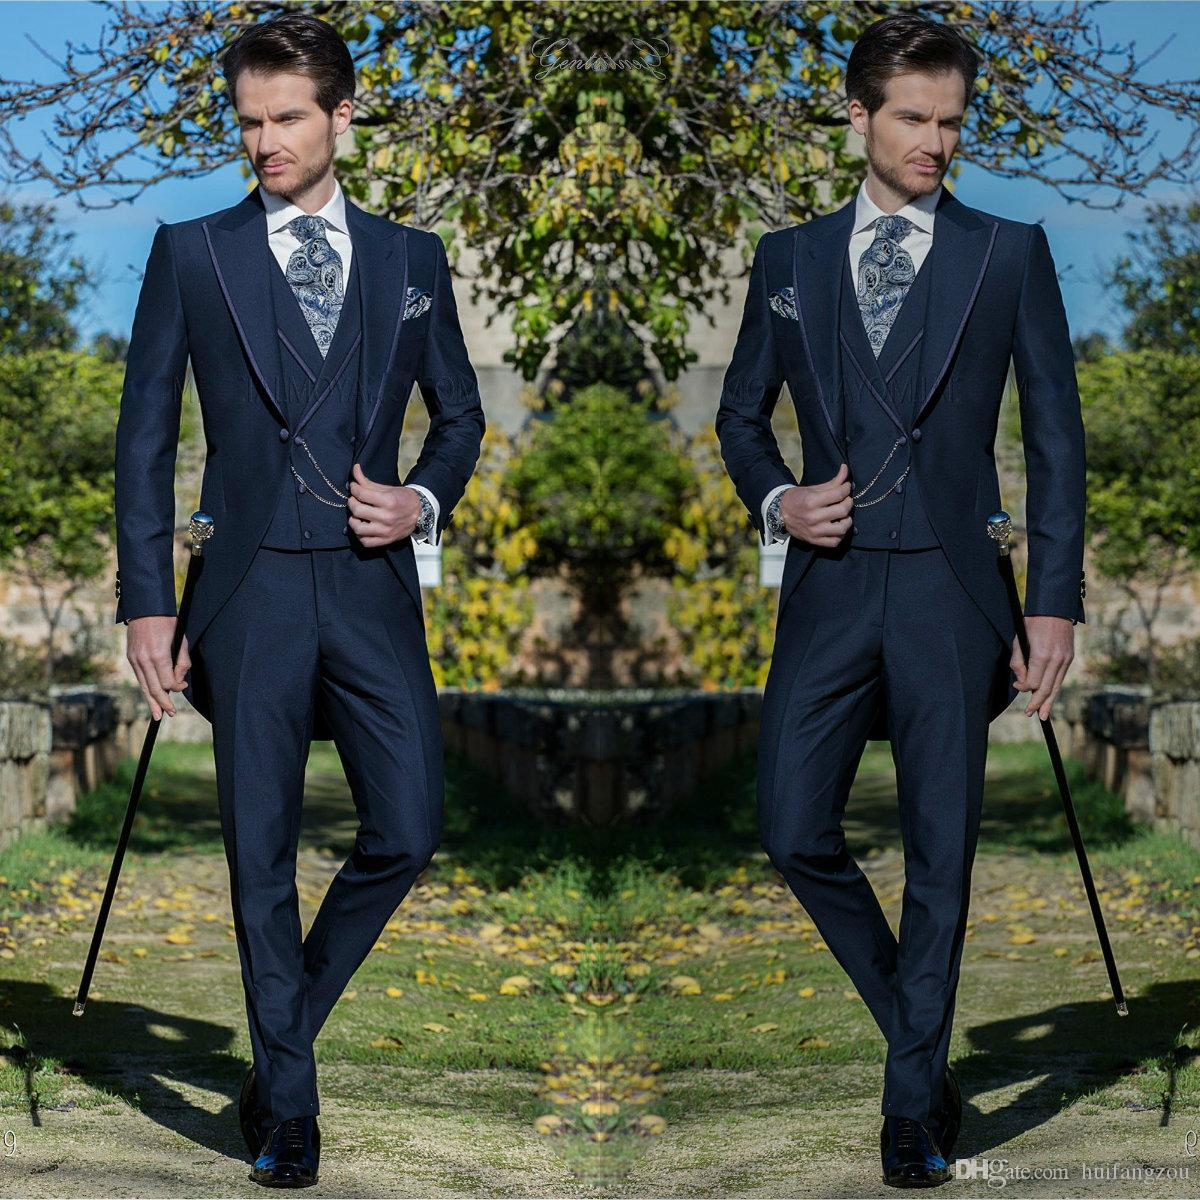 87bc5fbd05 Custom Design Mens Suits Three Pieces Formal Tuxedos Slim Fit Business  Groom Suit Set for Weddings Party Business Wear